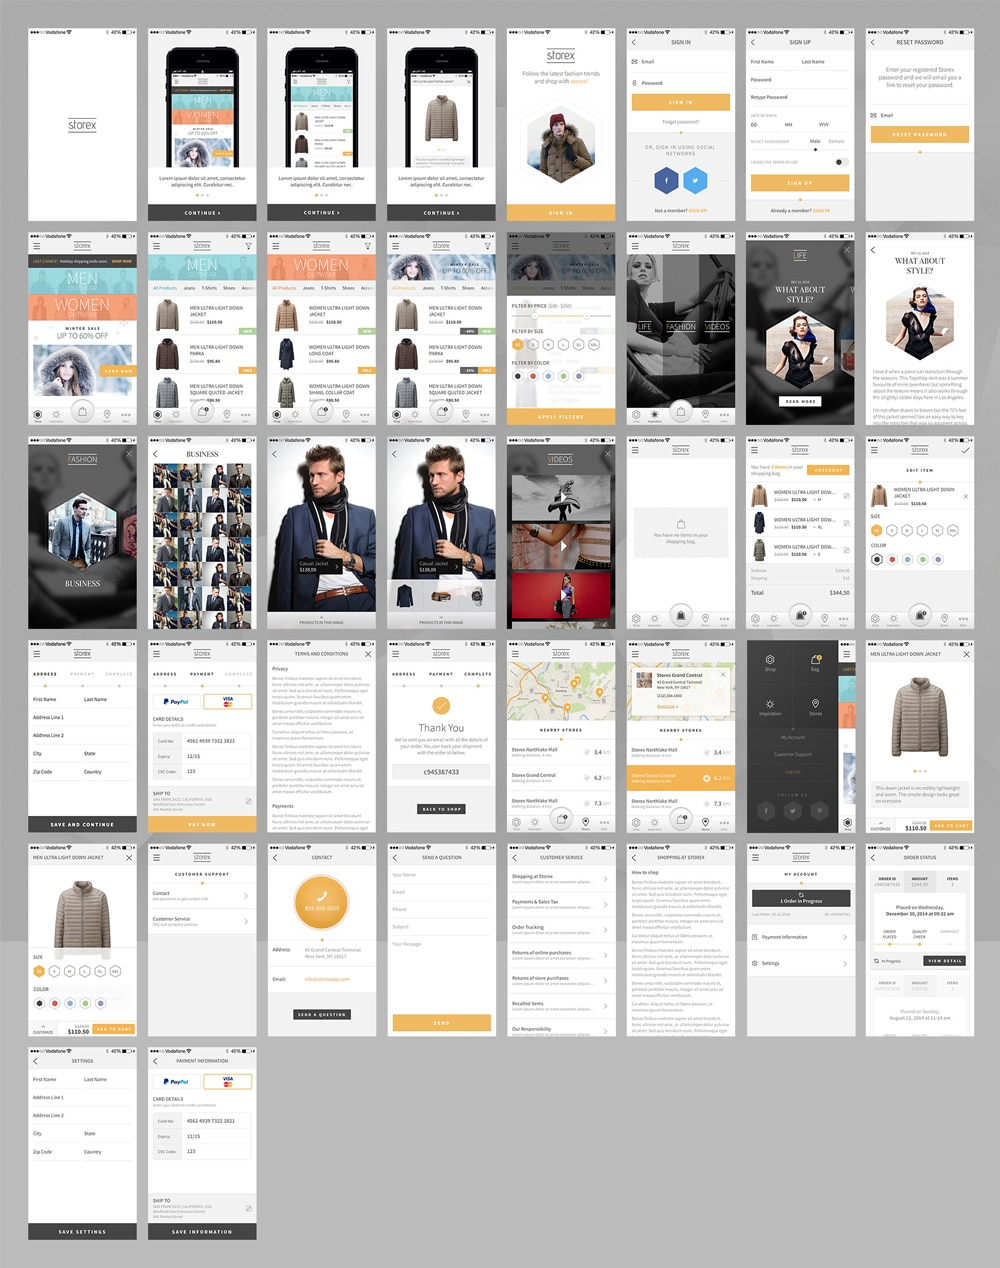 Storex Free Shopping Application Template